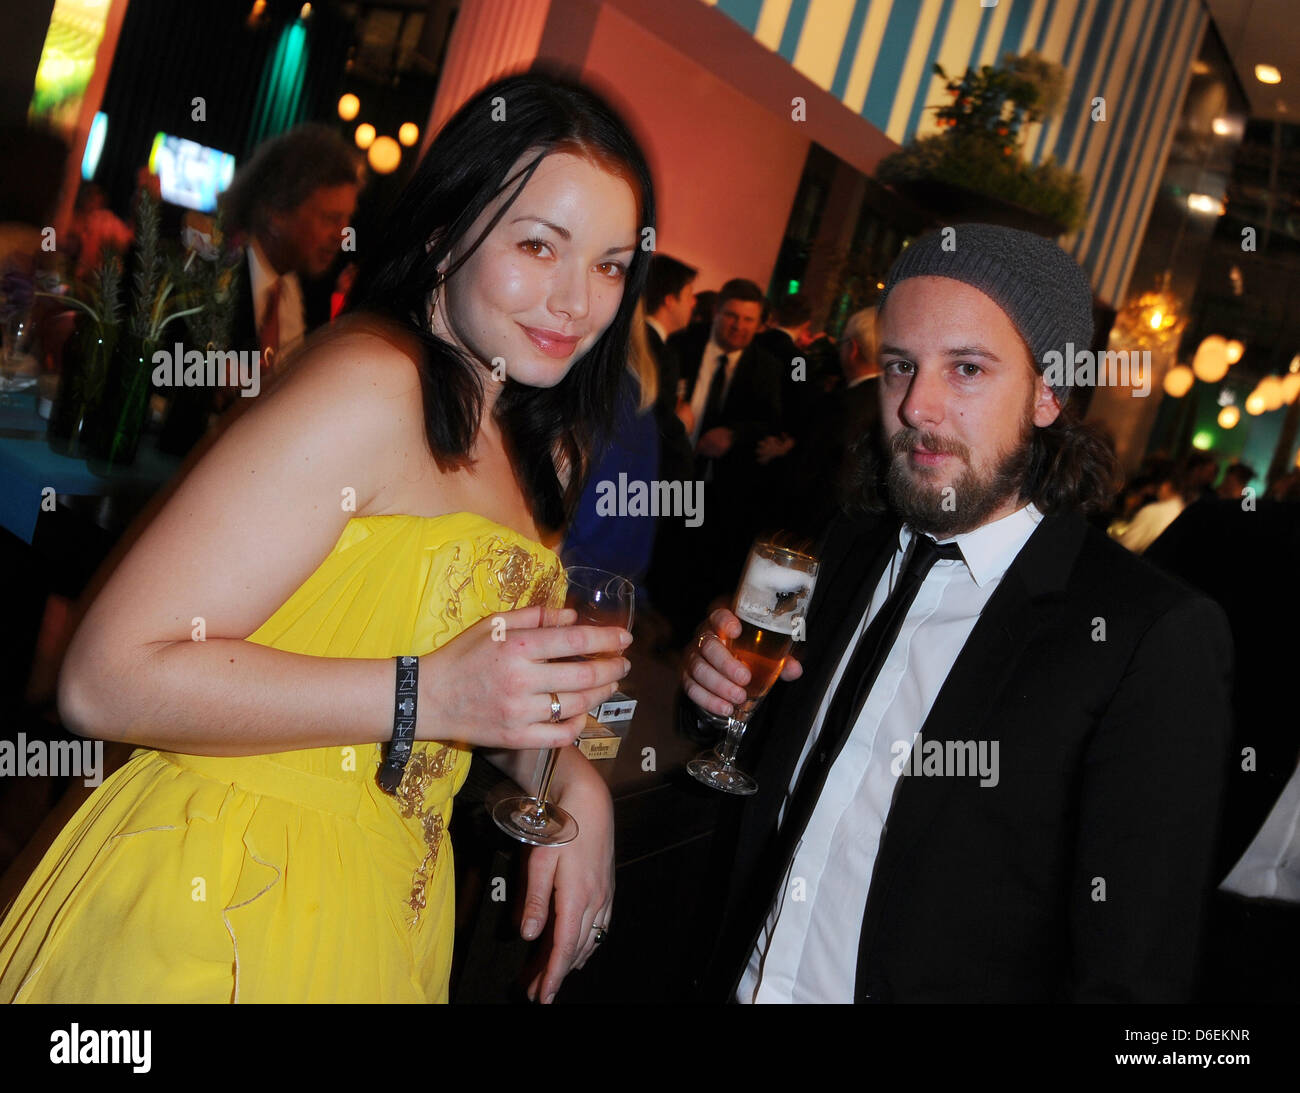 Actors Cosma Shiva Hagen and Marian Meder celebrate during the party of 47th Golden Camera award in Berlin, Germany, - Stock Image